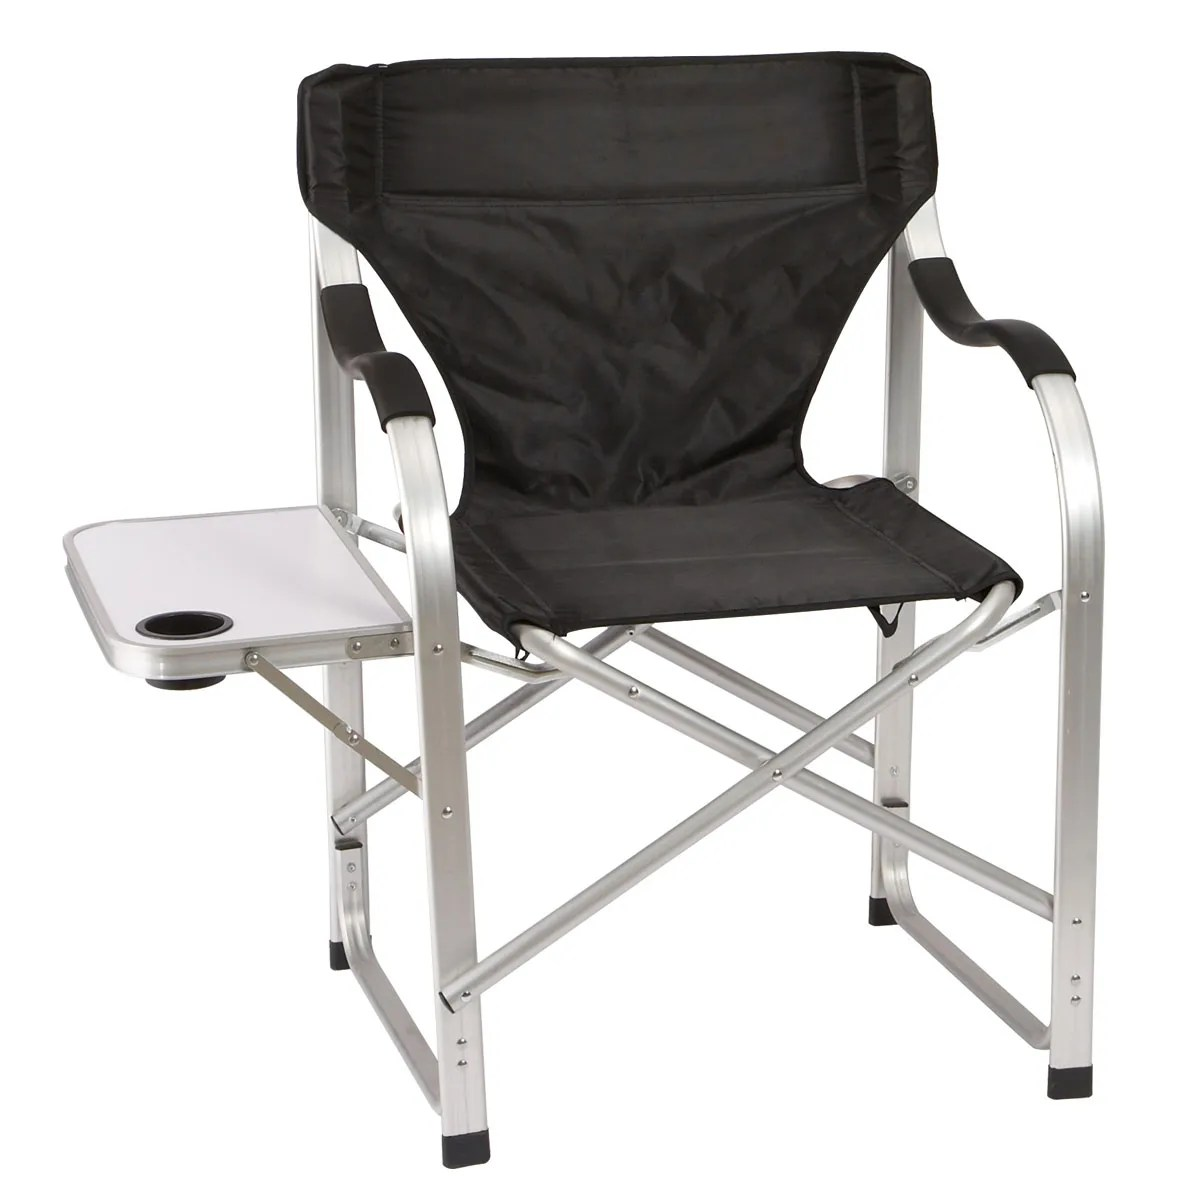 Heavy Duty Collapsible Lawn Chair Black  from Sportys